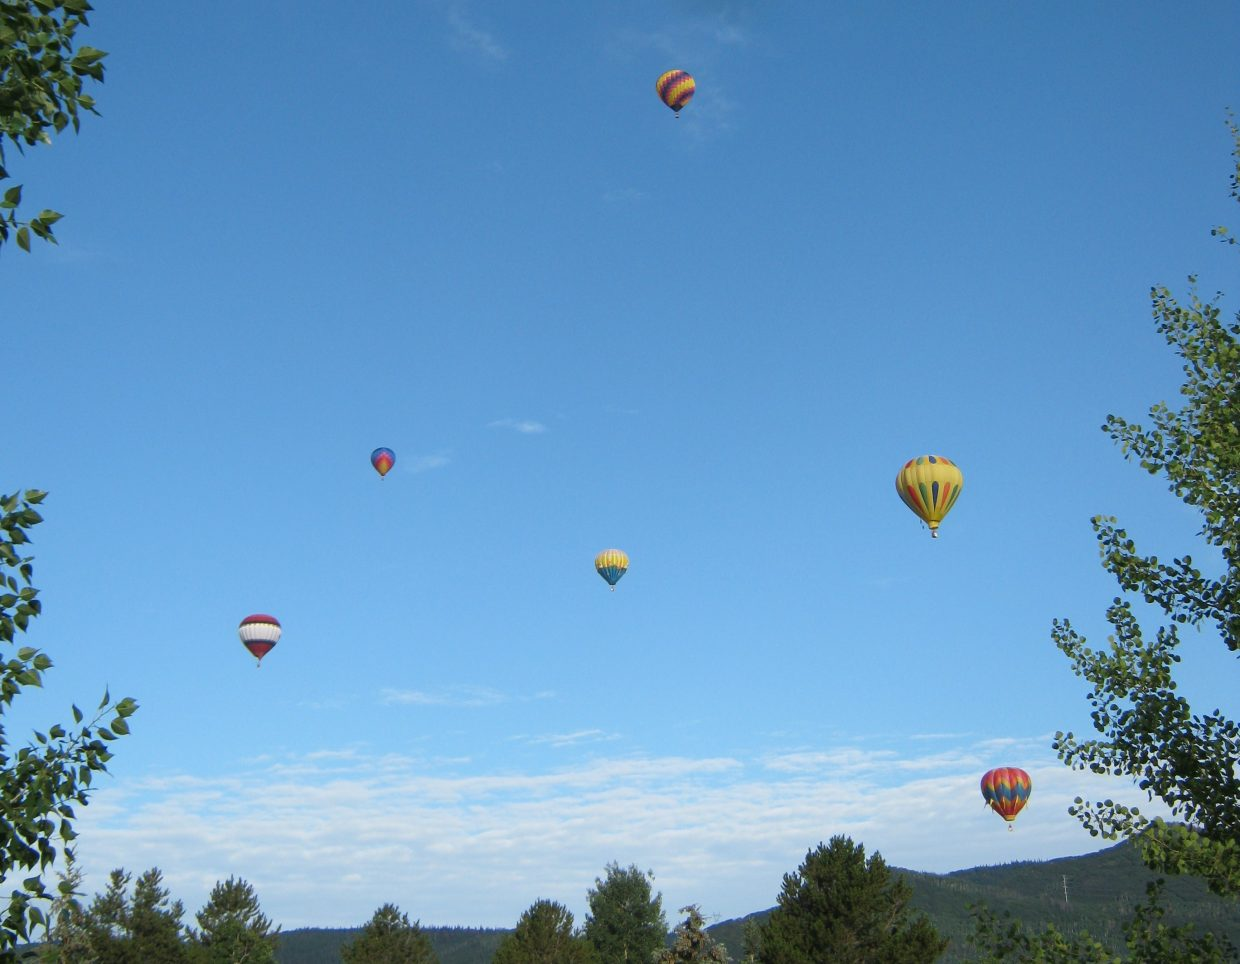 Steamboat Springs Hot Air Balloon Rodeo 2013. Submitted by: Janie Johnson-Russell